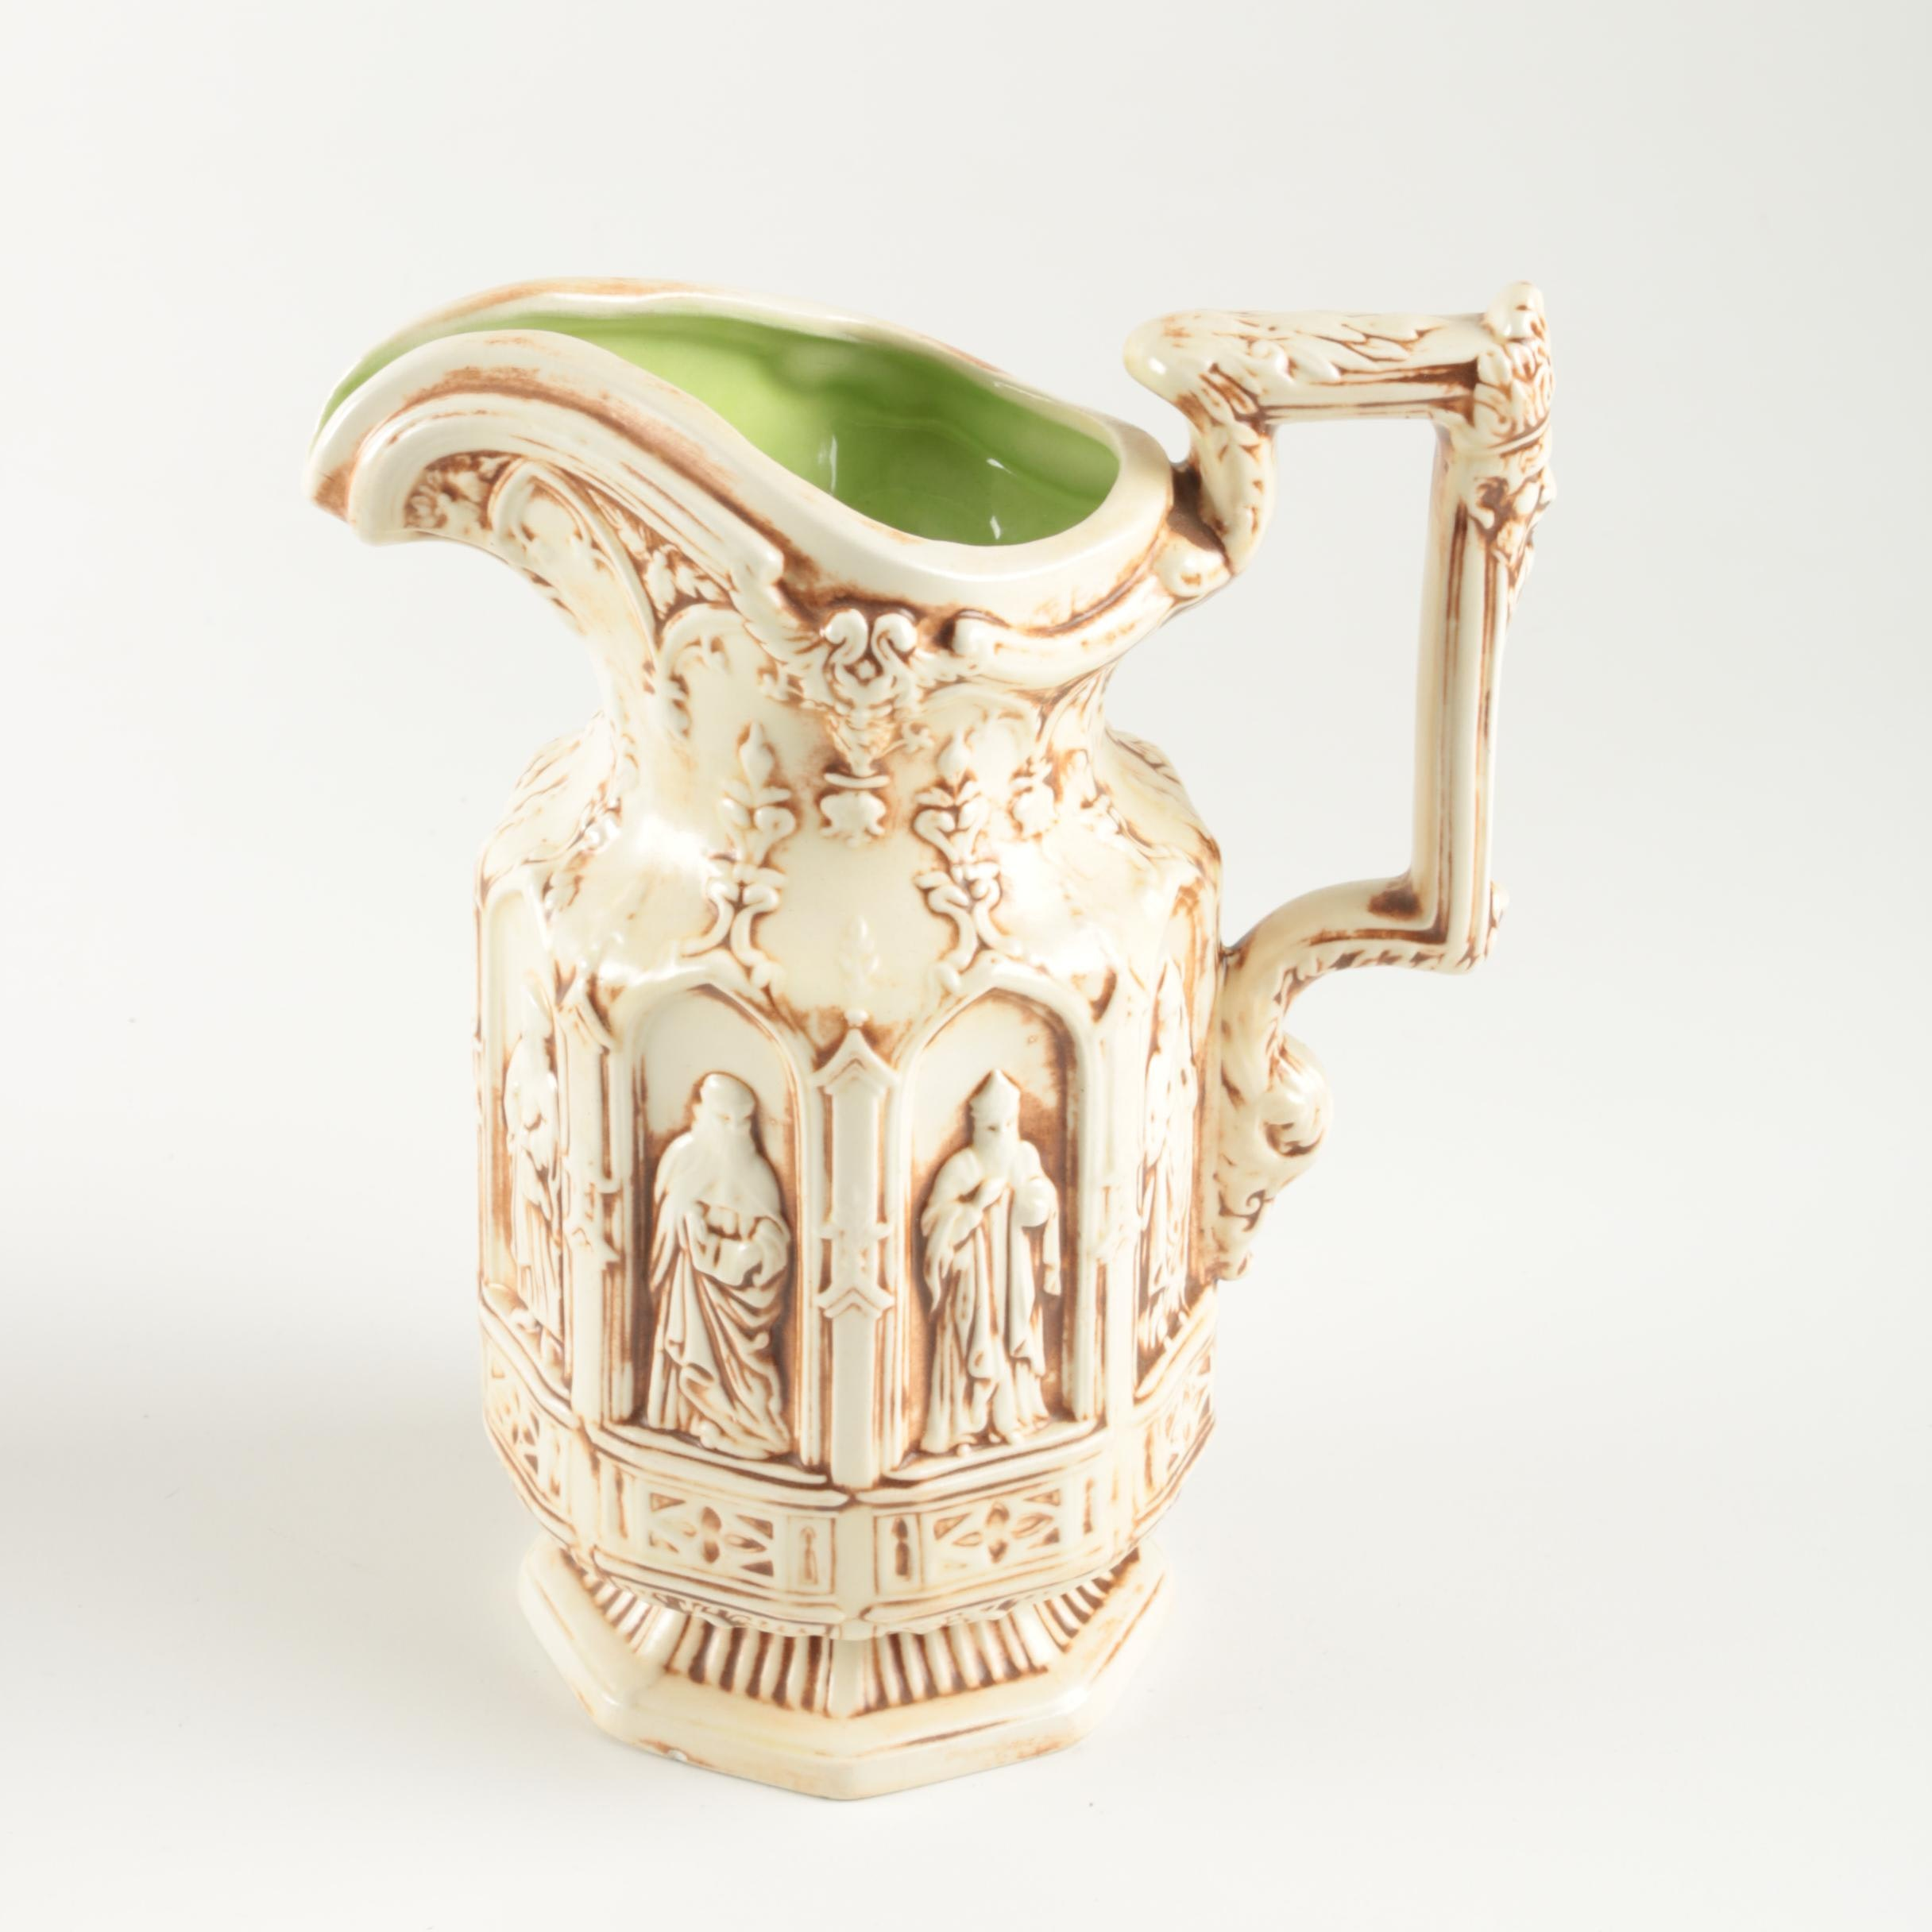 Signed Ceramic Pitcher with Iconographic Motif